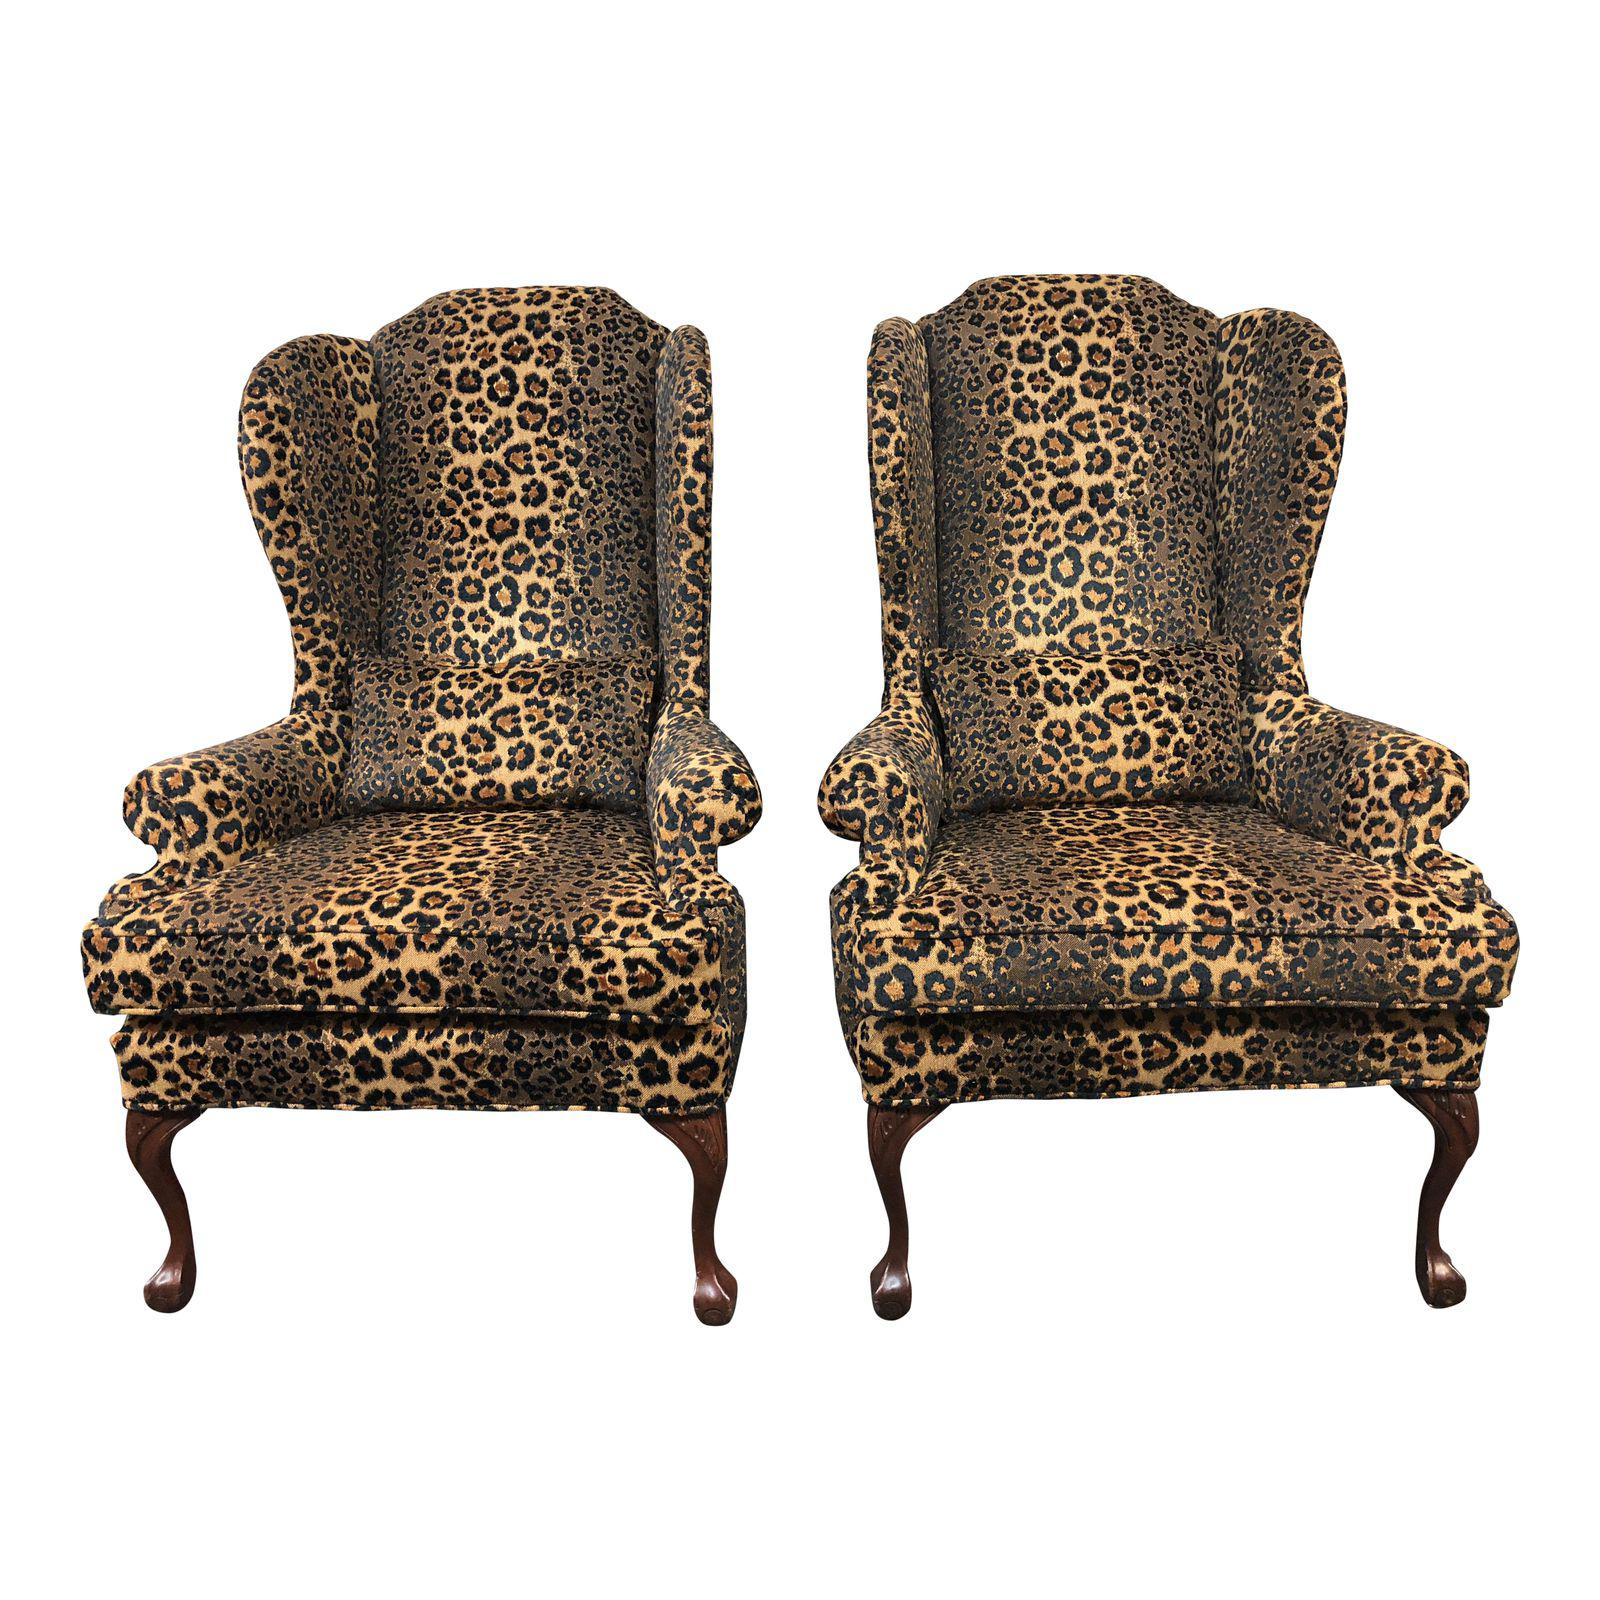 Pair of Custom Leopard Wingback Chairs Design Plus Gallery